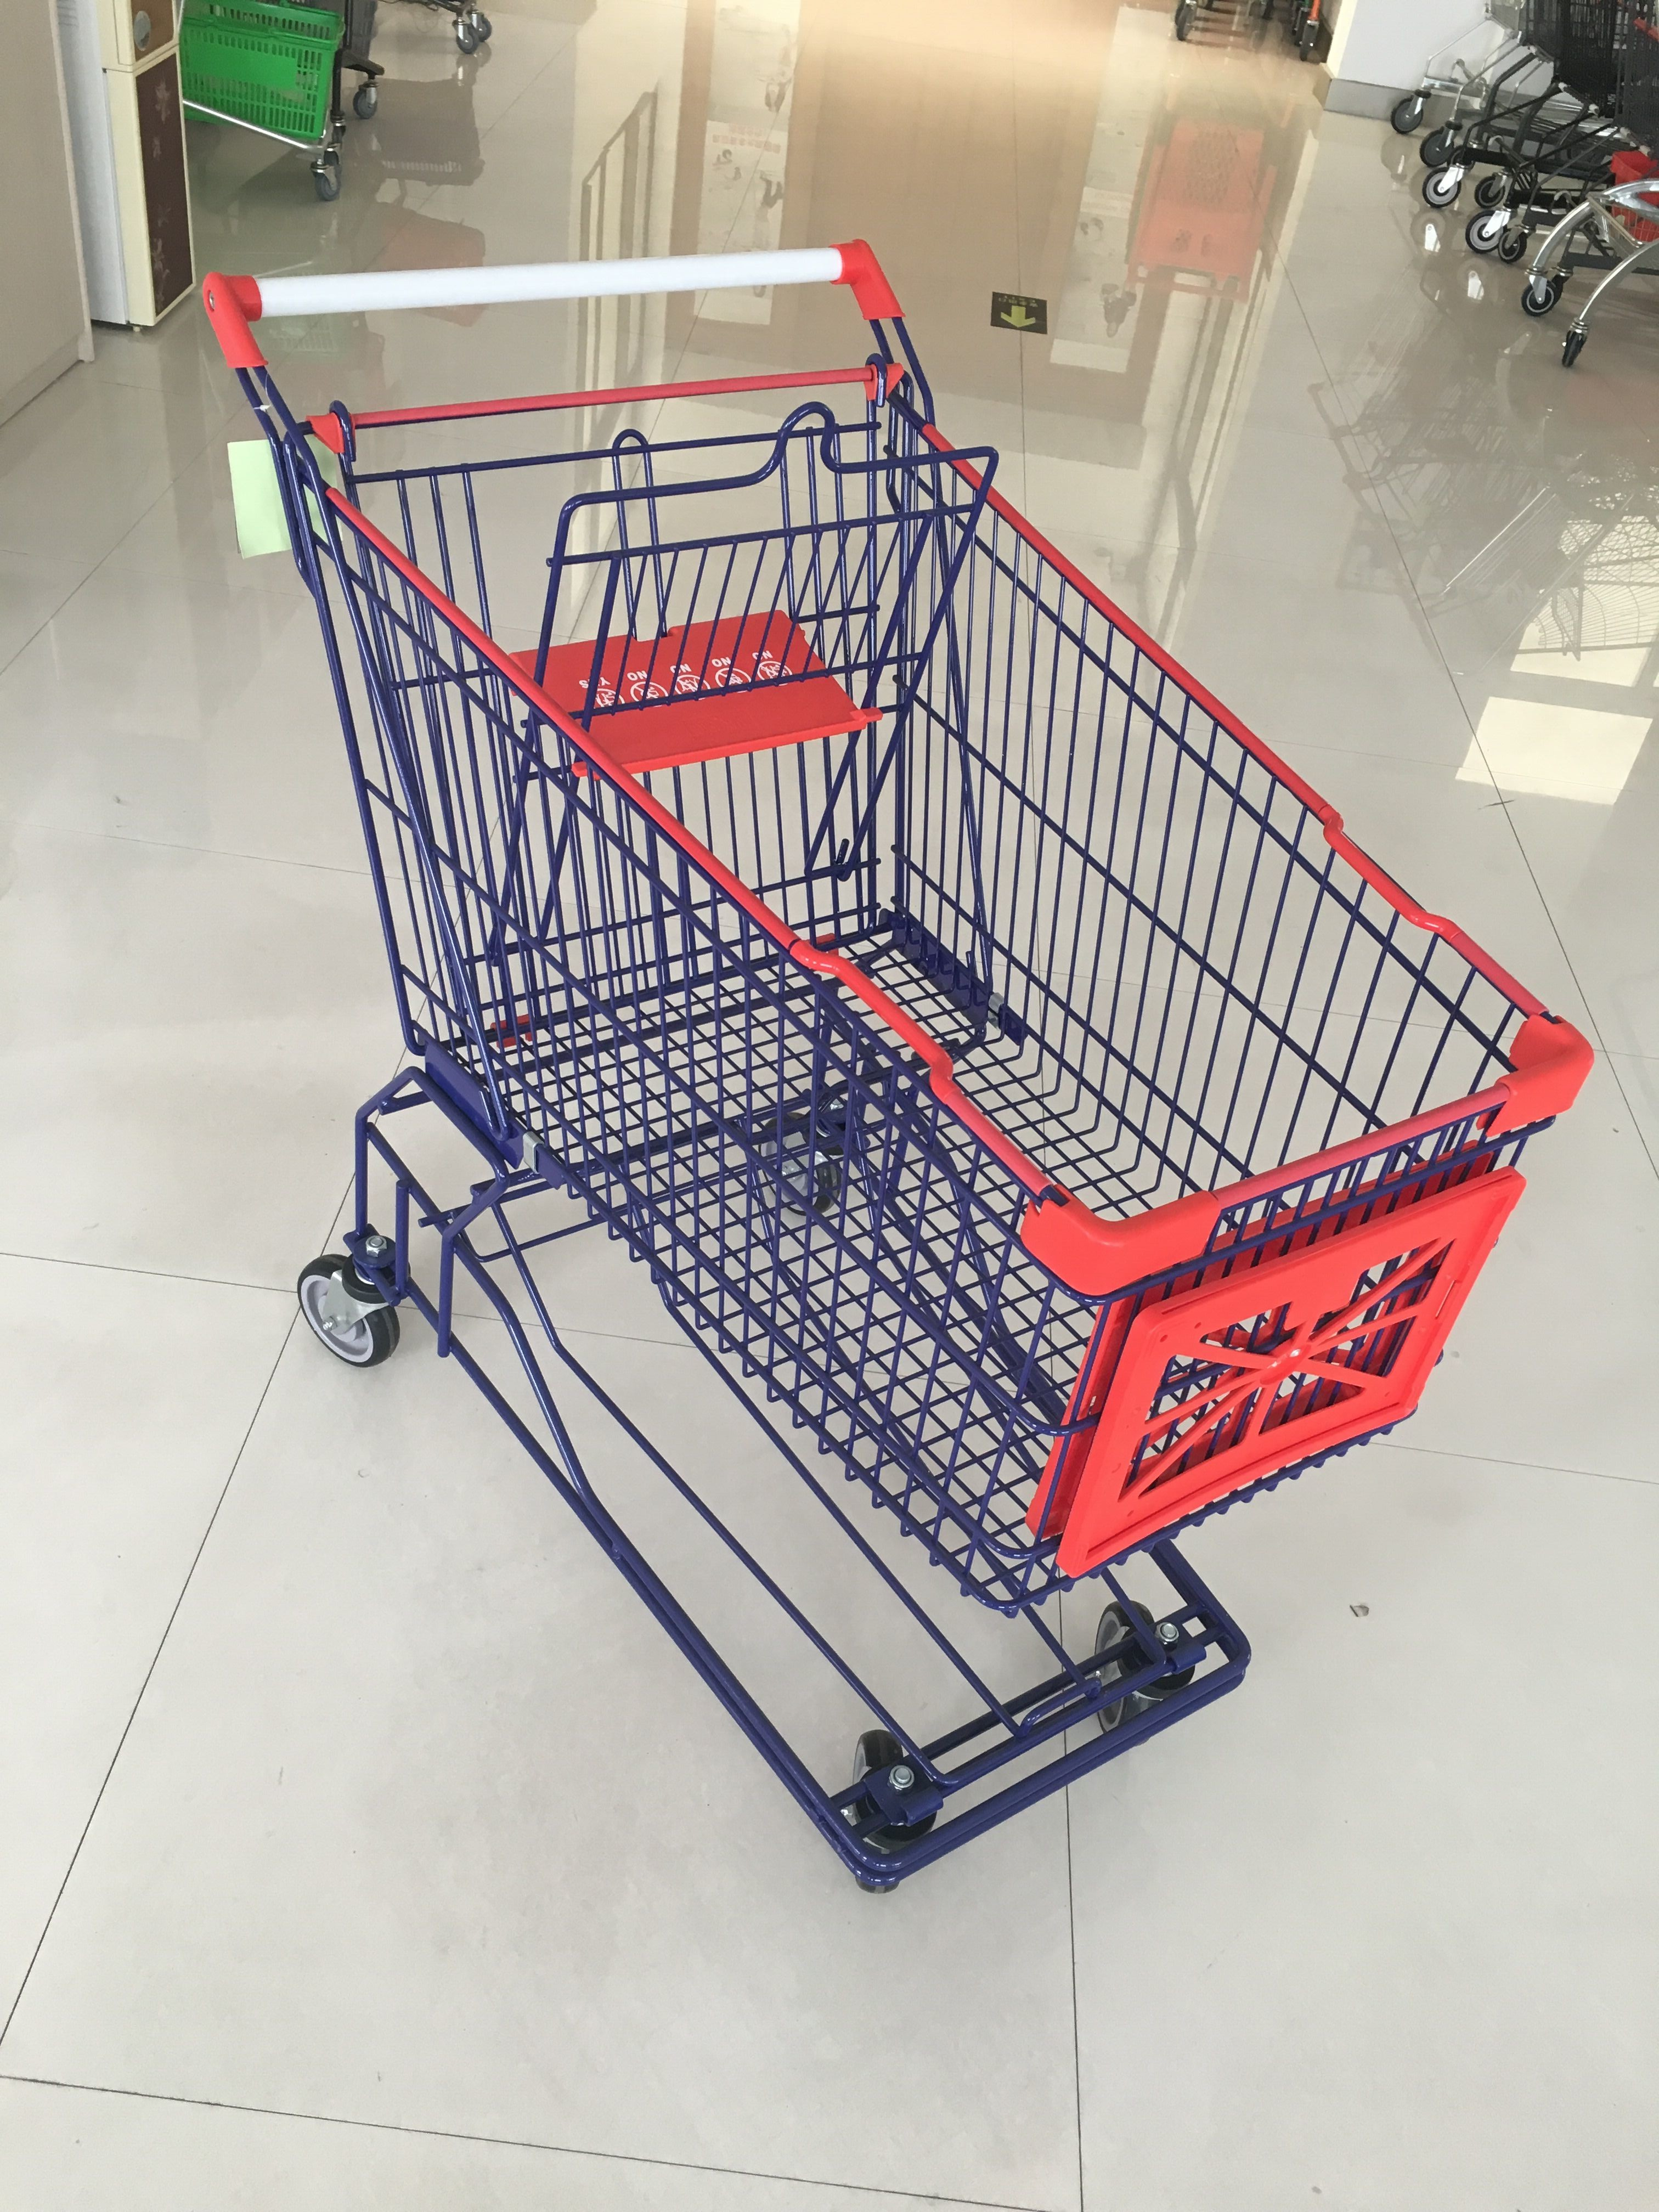 150 L 4 Wheel Supermarket Shopping Trolley Zinc Plated And Red Plastic Parts